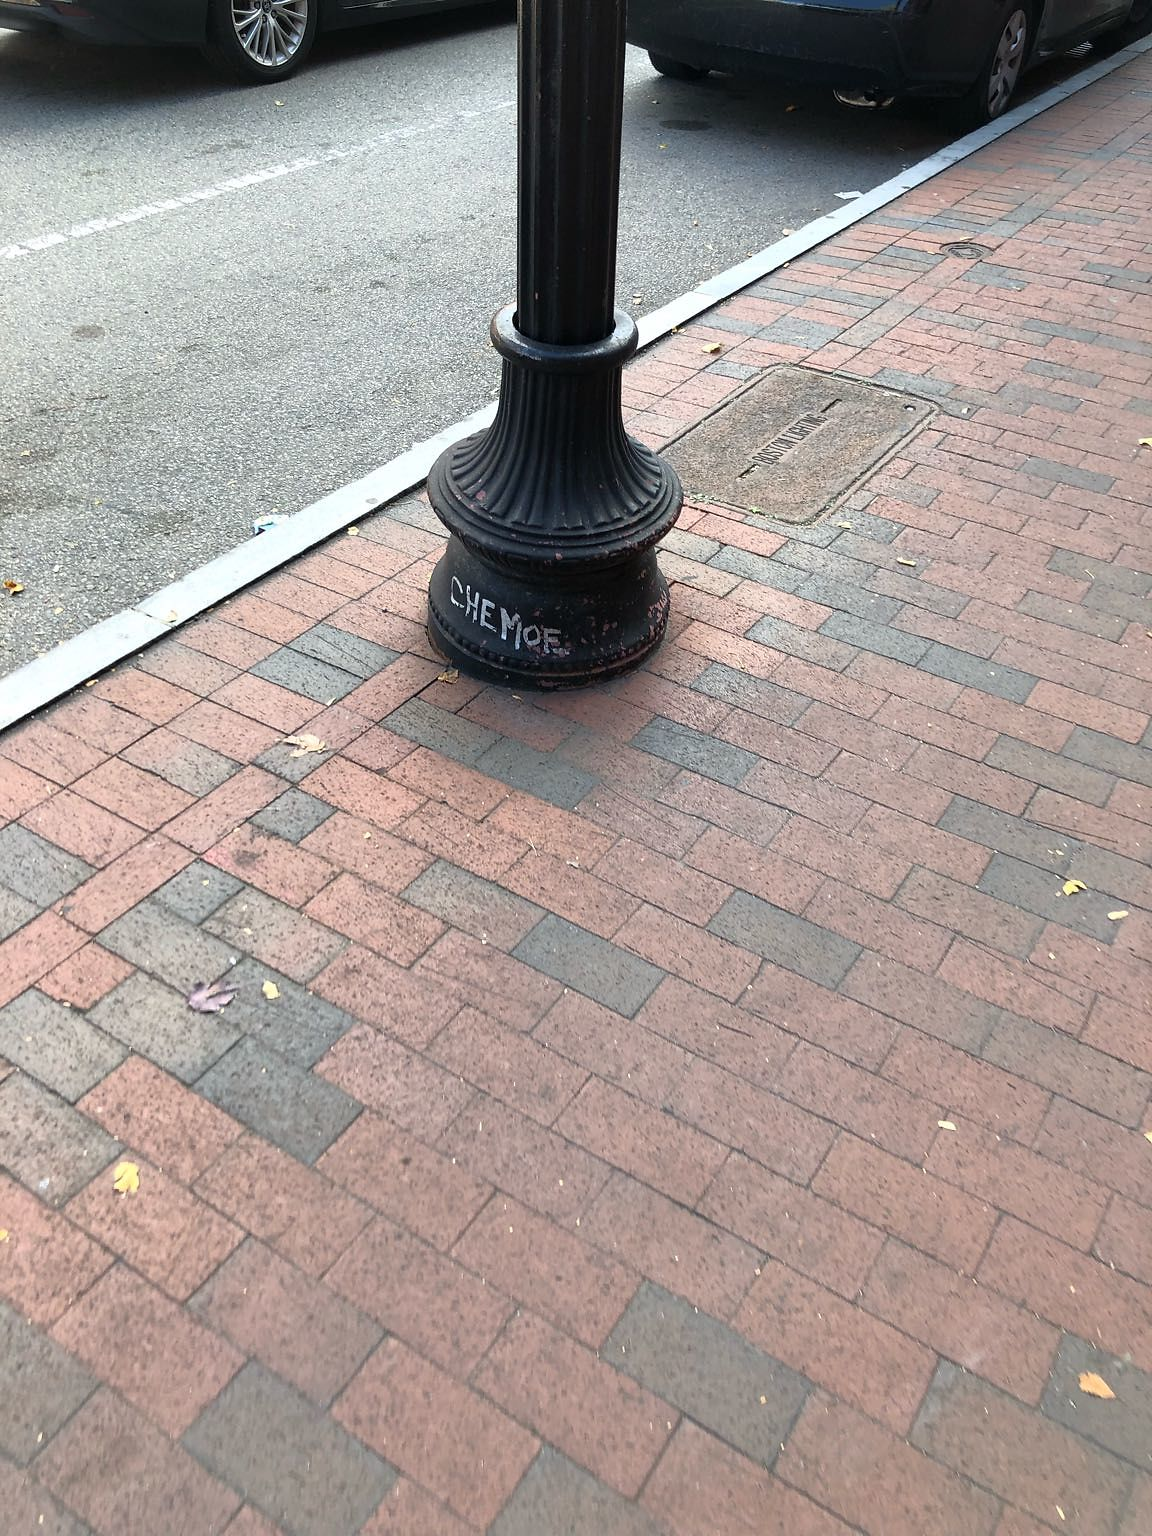 From 397 - 433 Mass Ave, the bottom of street light have graffiti on them